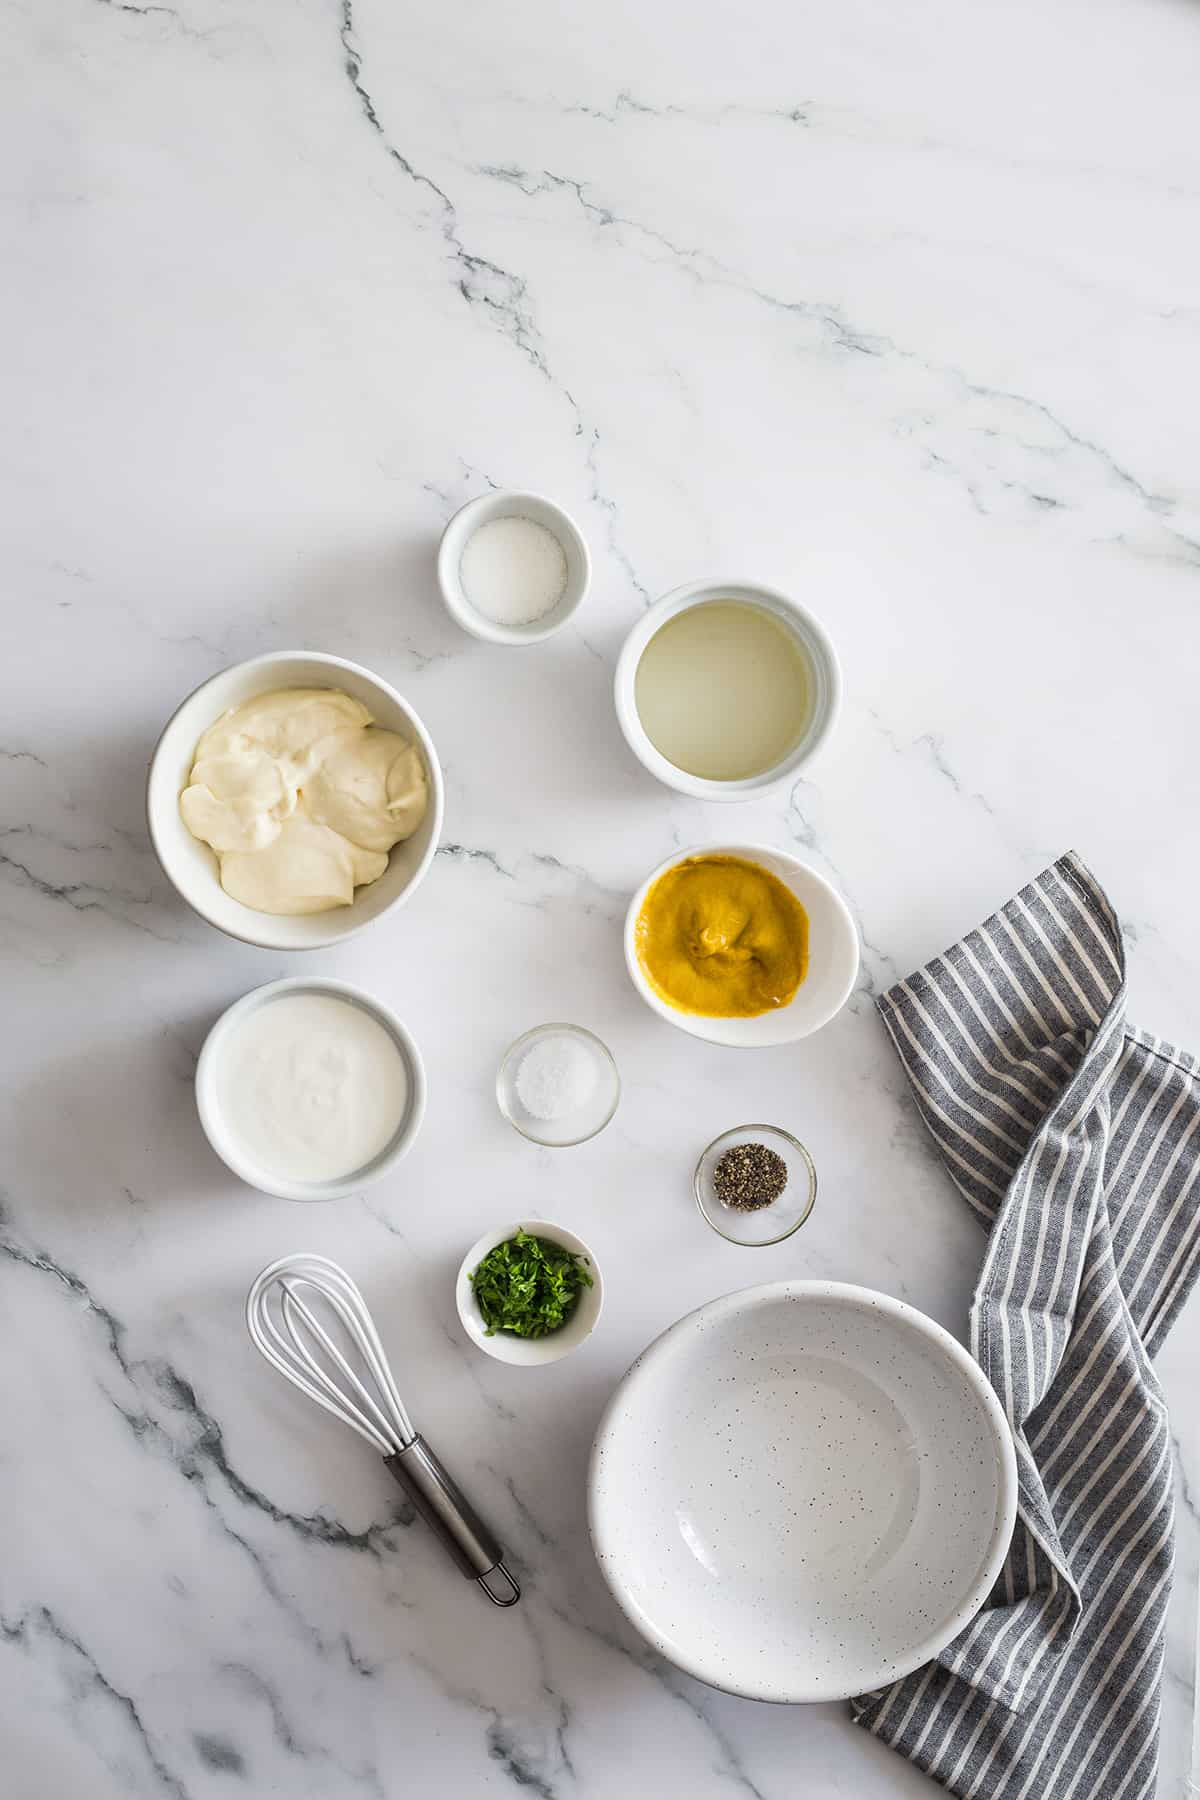 Mayonnaise, mustard, vinegar and other ingredients for pasta salad